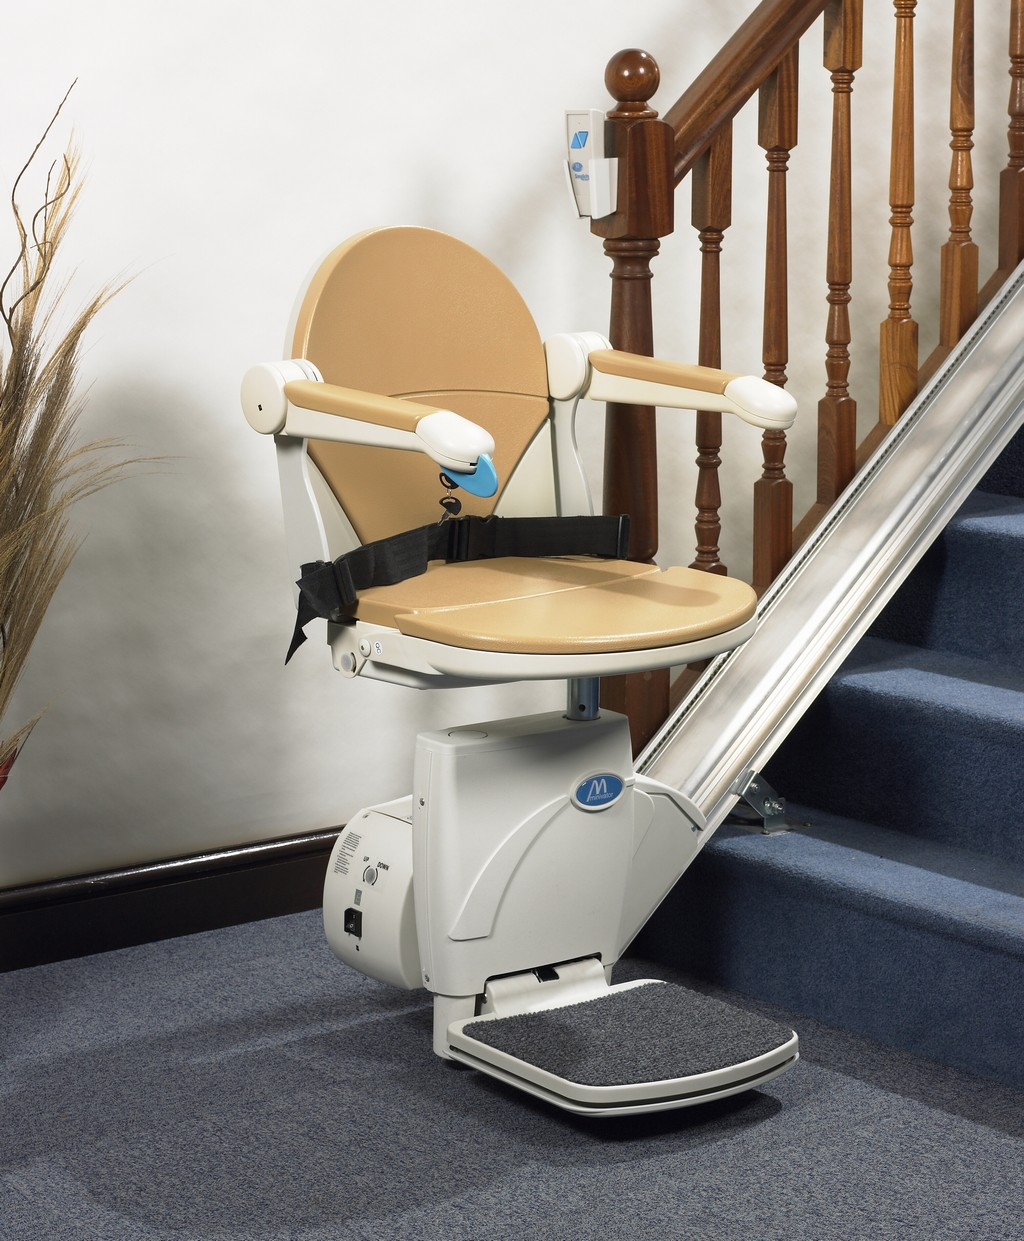 stair lift reviews, stair lift, ct stair lift, used stair lift ohio